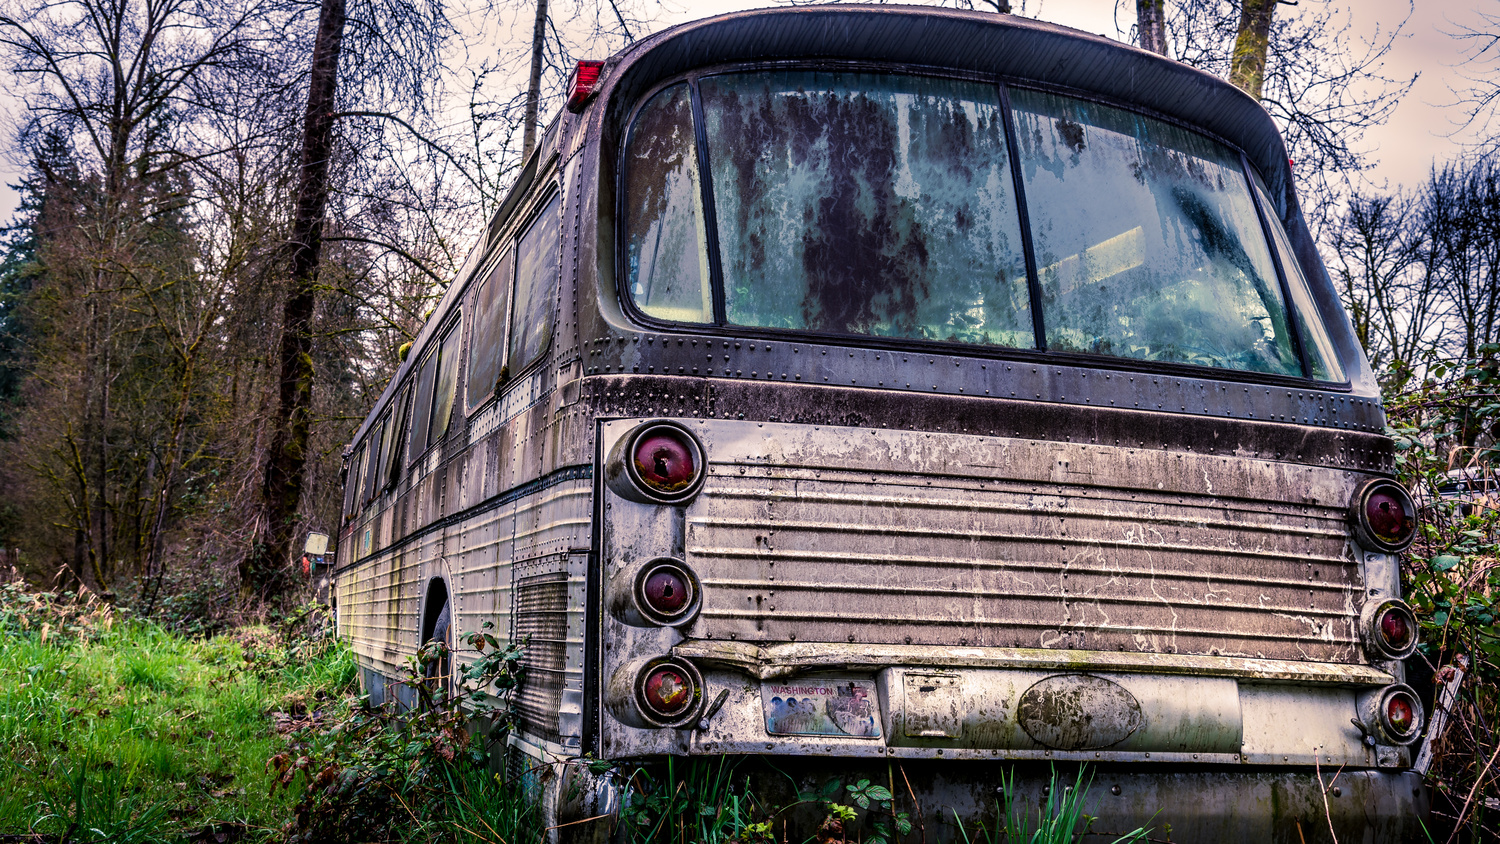 An Abandoned Bus by Harry Grewal